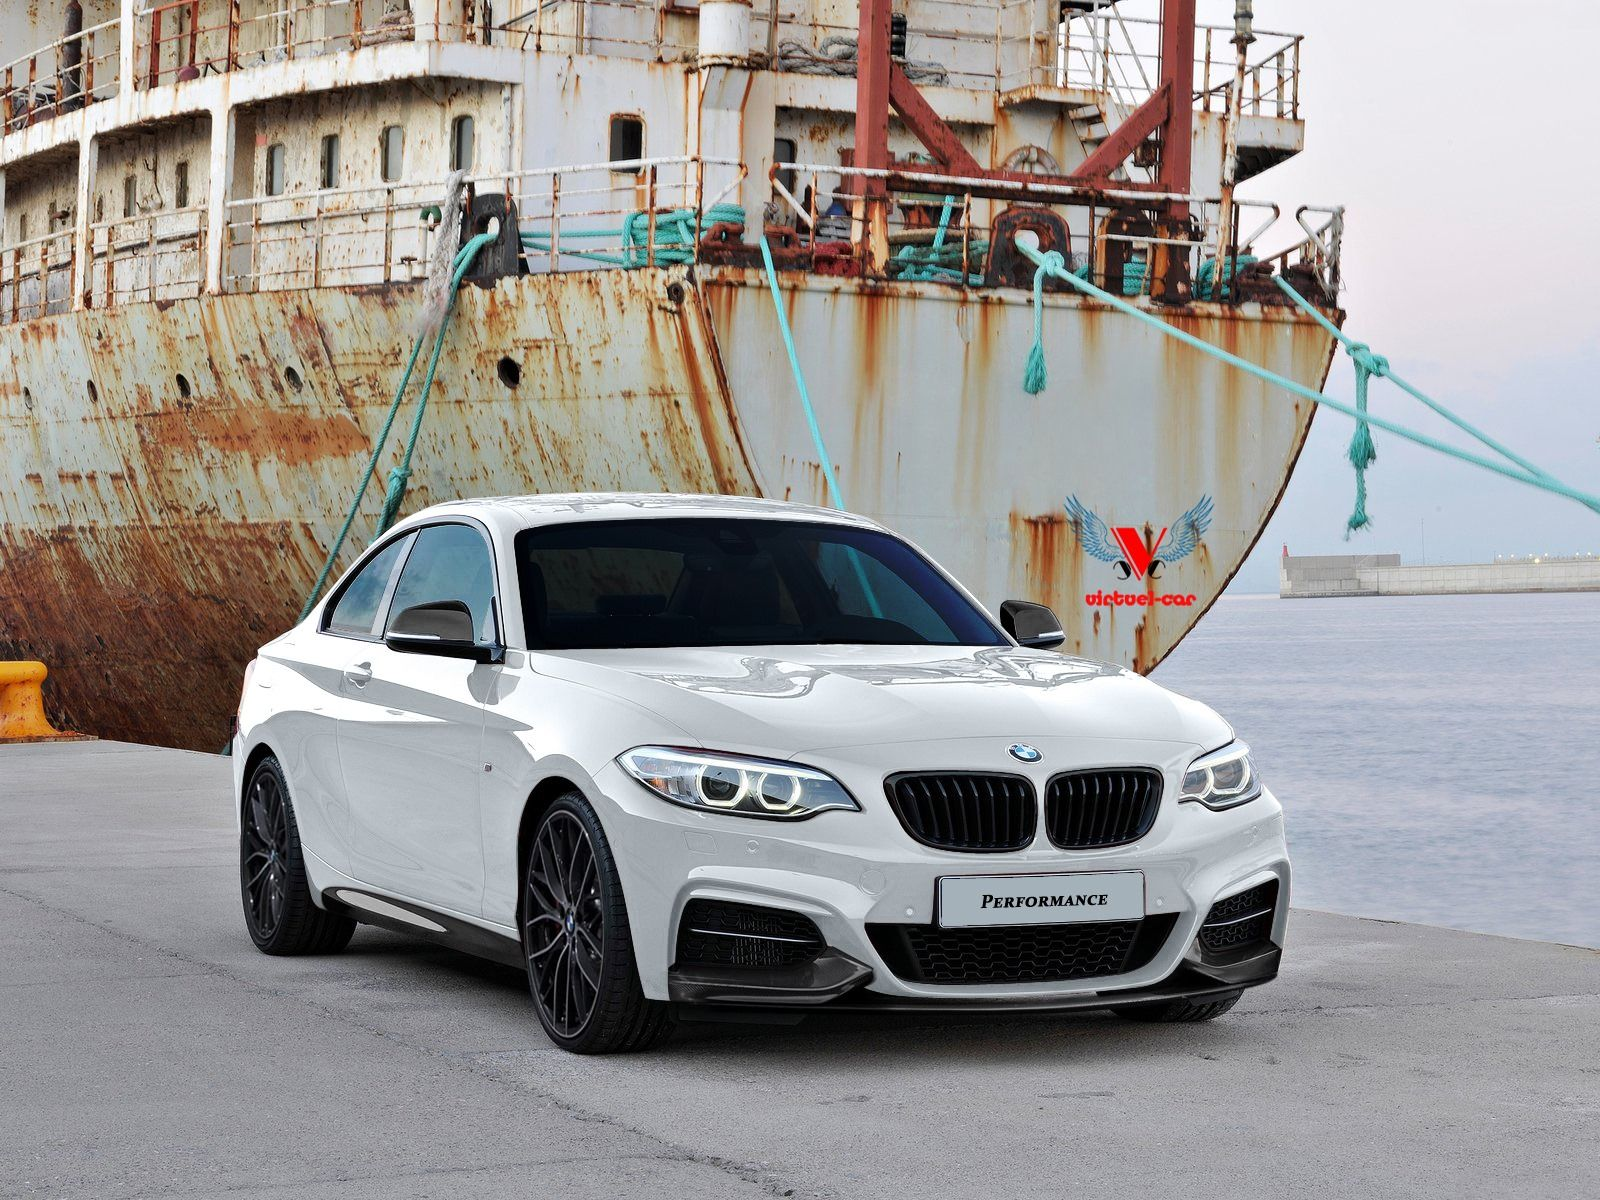 bmw 2 series coupe m performance bmw pinterest bmw cars and bmw s. Black Bedroom Furniture Sets. Home Design Ideas